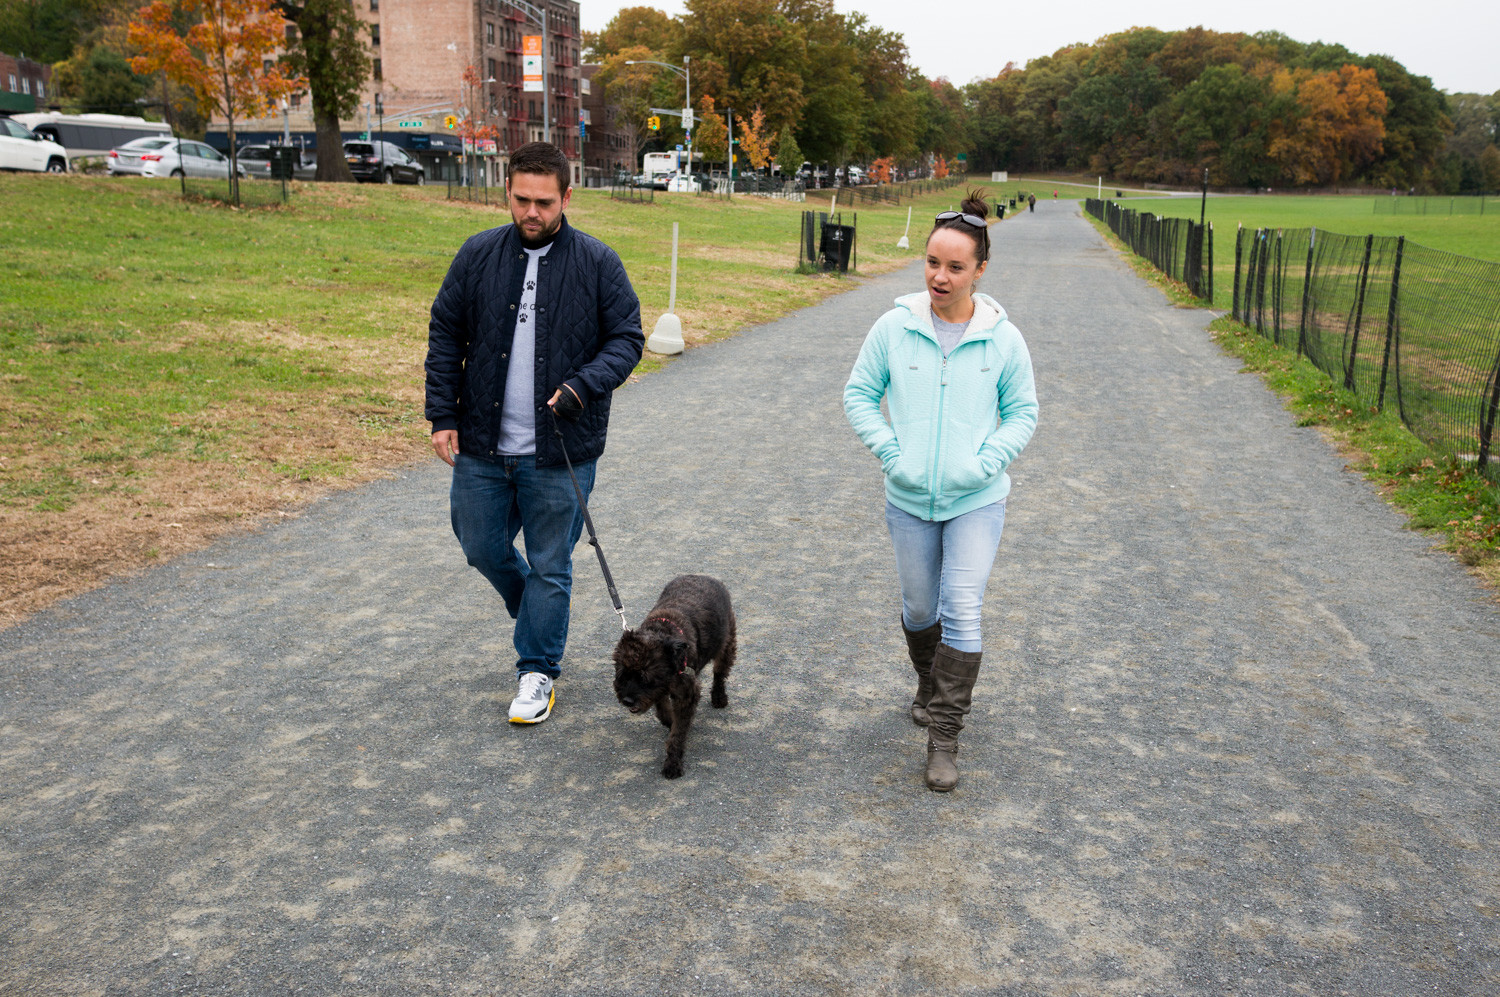 Chad Goldman and Leslie Centofanti walk their dog Lula in Van Cortlandt Park. Goldman and Centofanti run Pumkin Paws, a dog walking service that will open a brick-and-mortar location in Riverdale.